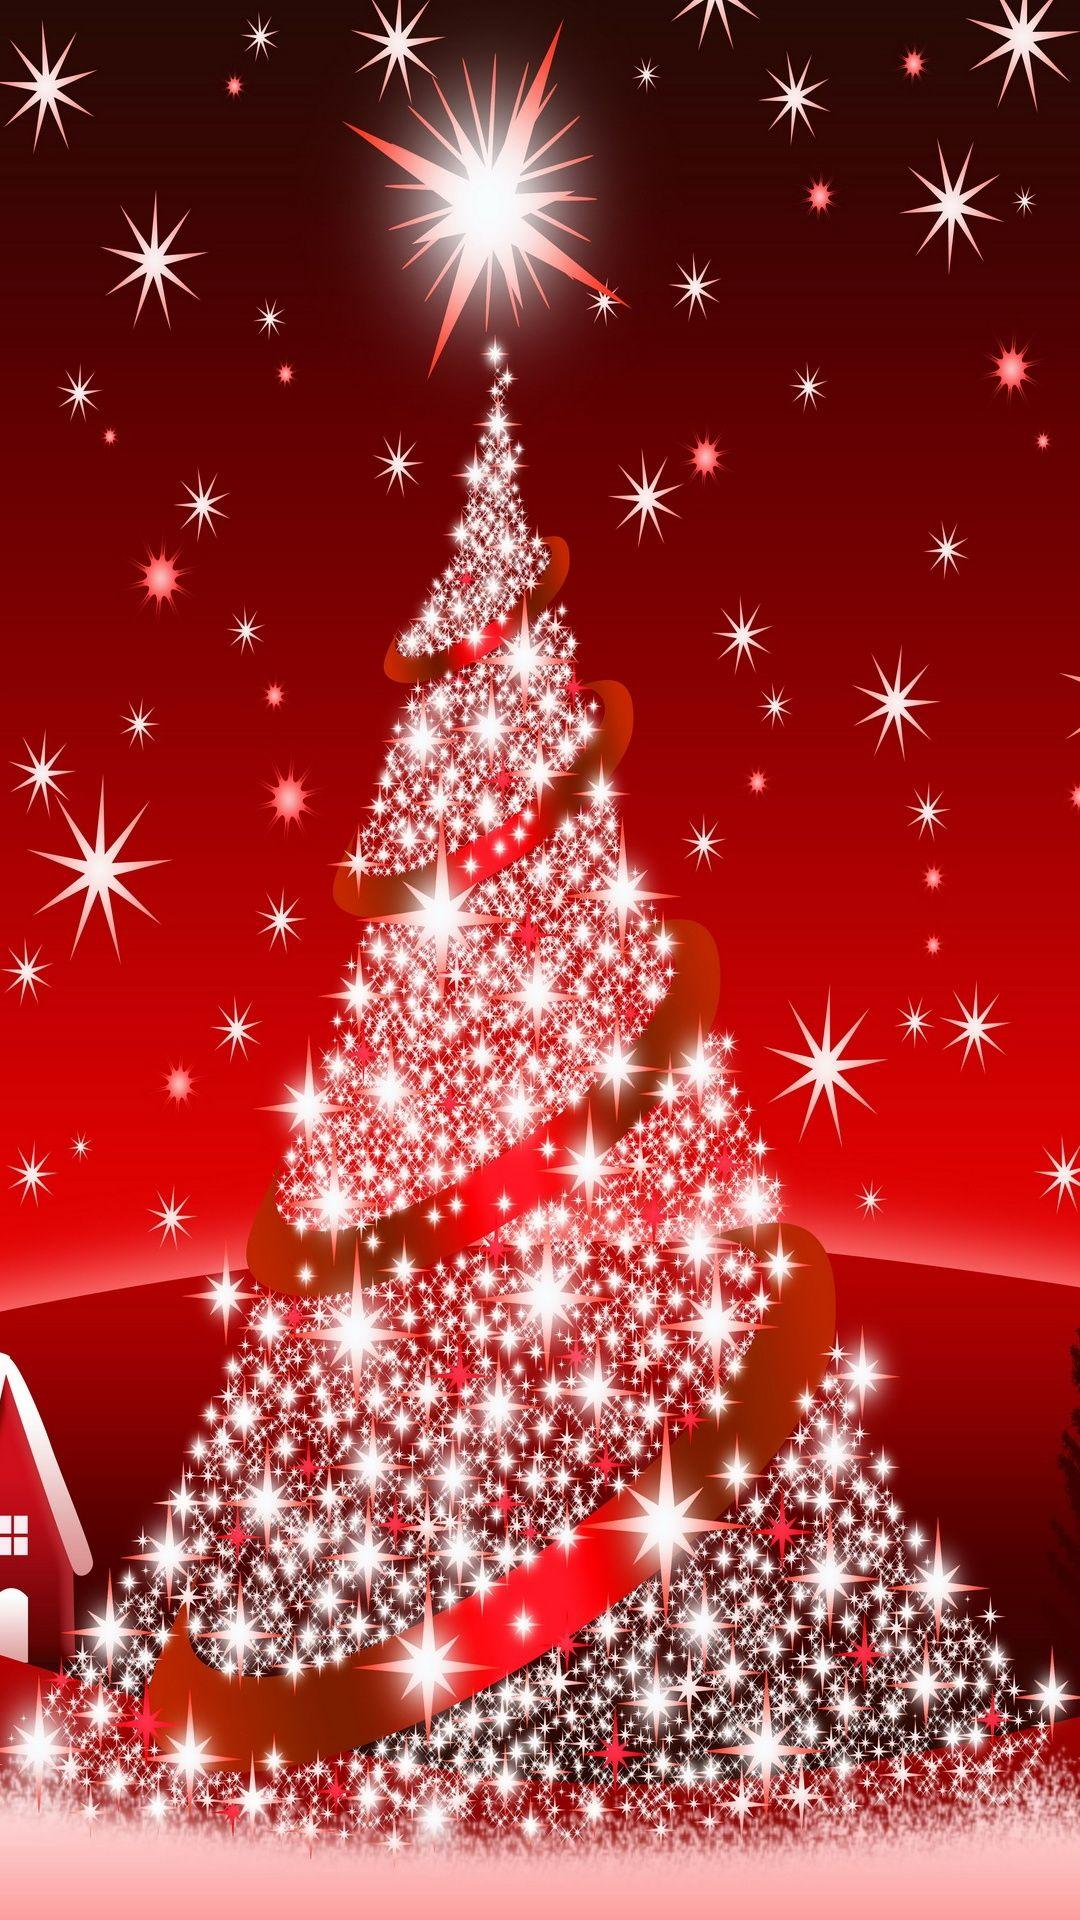 Merry Christmas 2019 Hd Wallpapers Wallpaper Cave